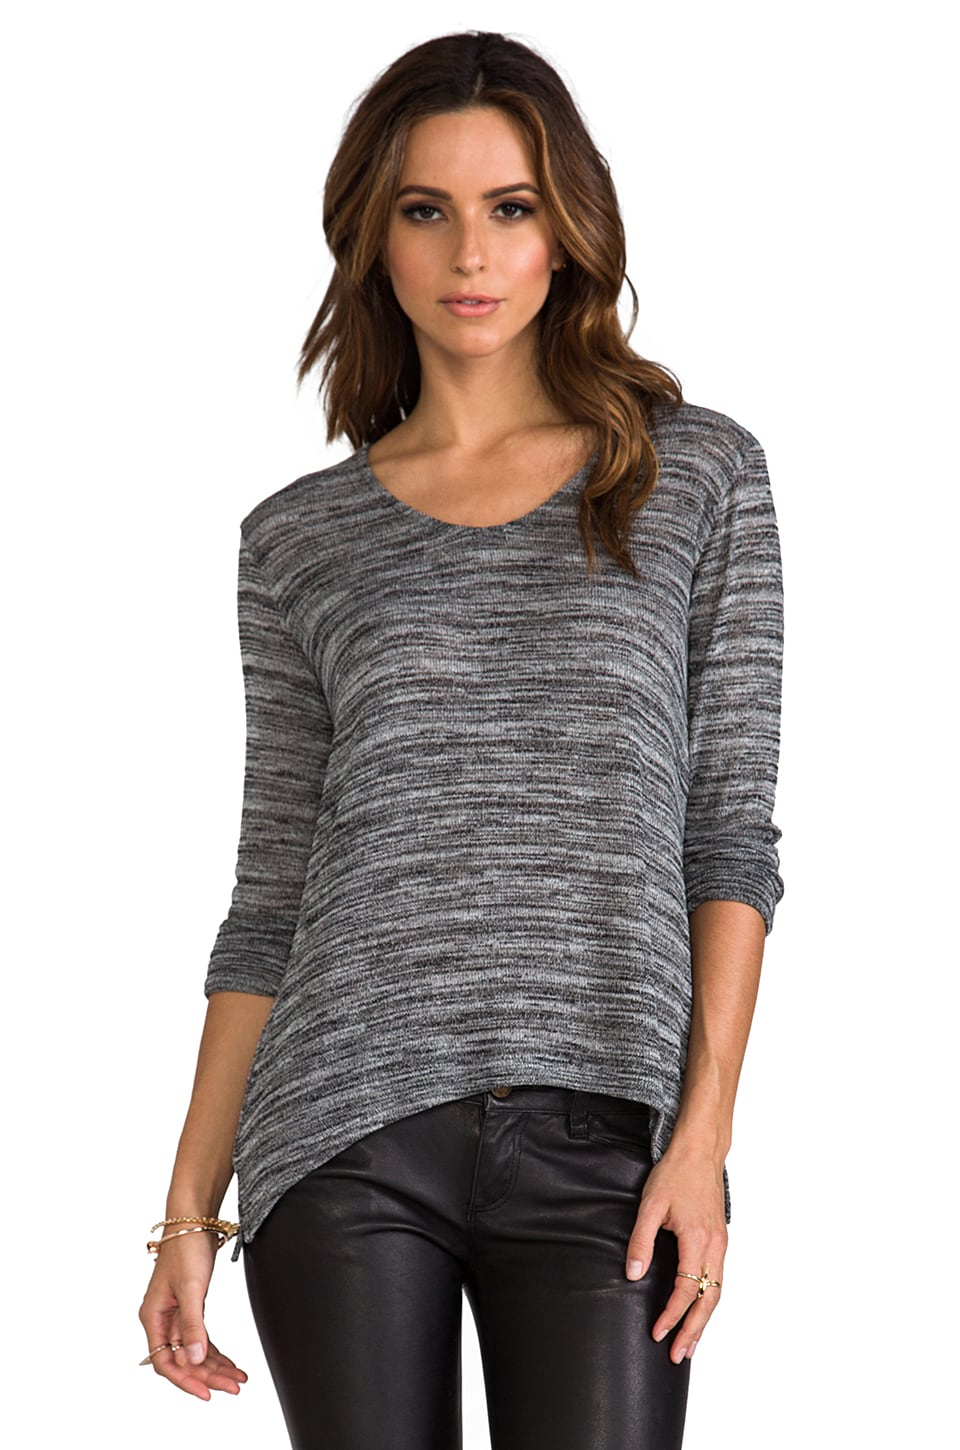 Whetherly Wolfgang Ezra Top in Black/Grey/White